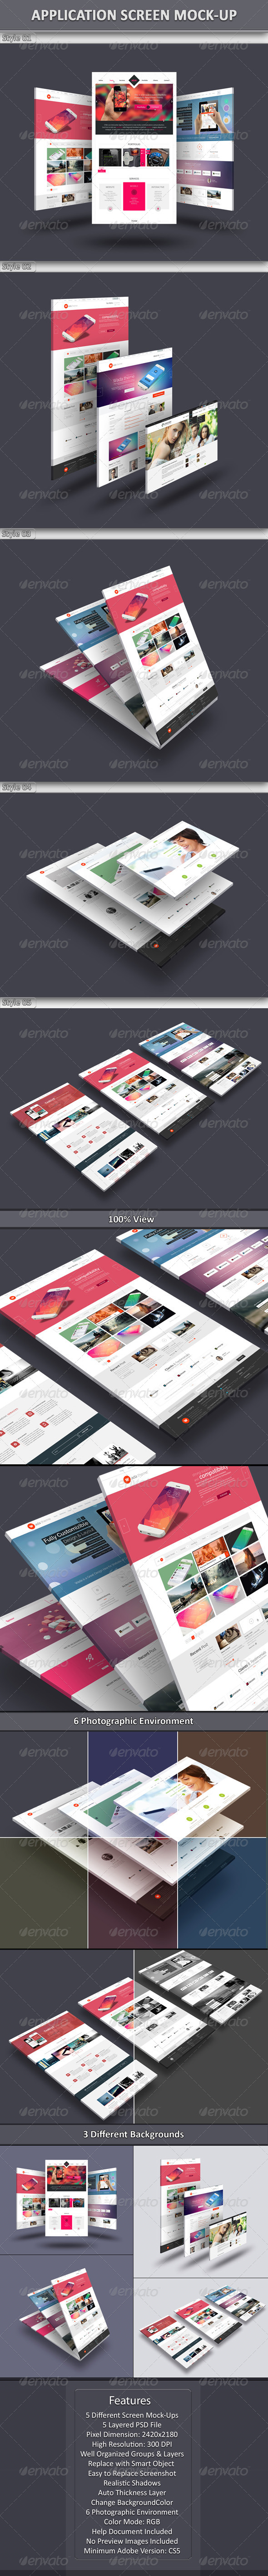 GraphicRiver App Screen Mock-Up 6851245